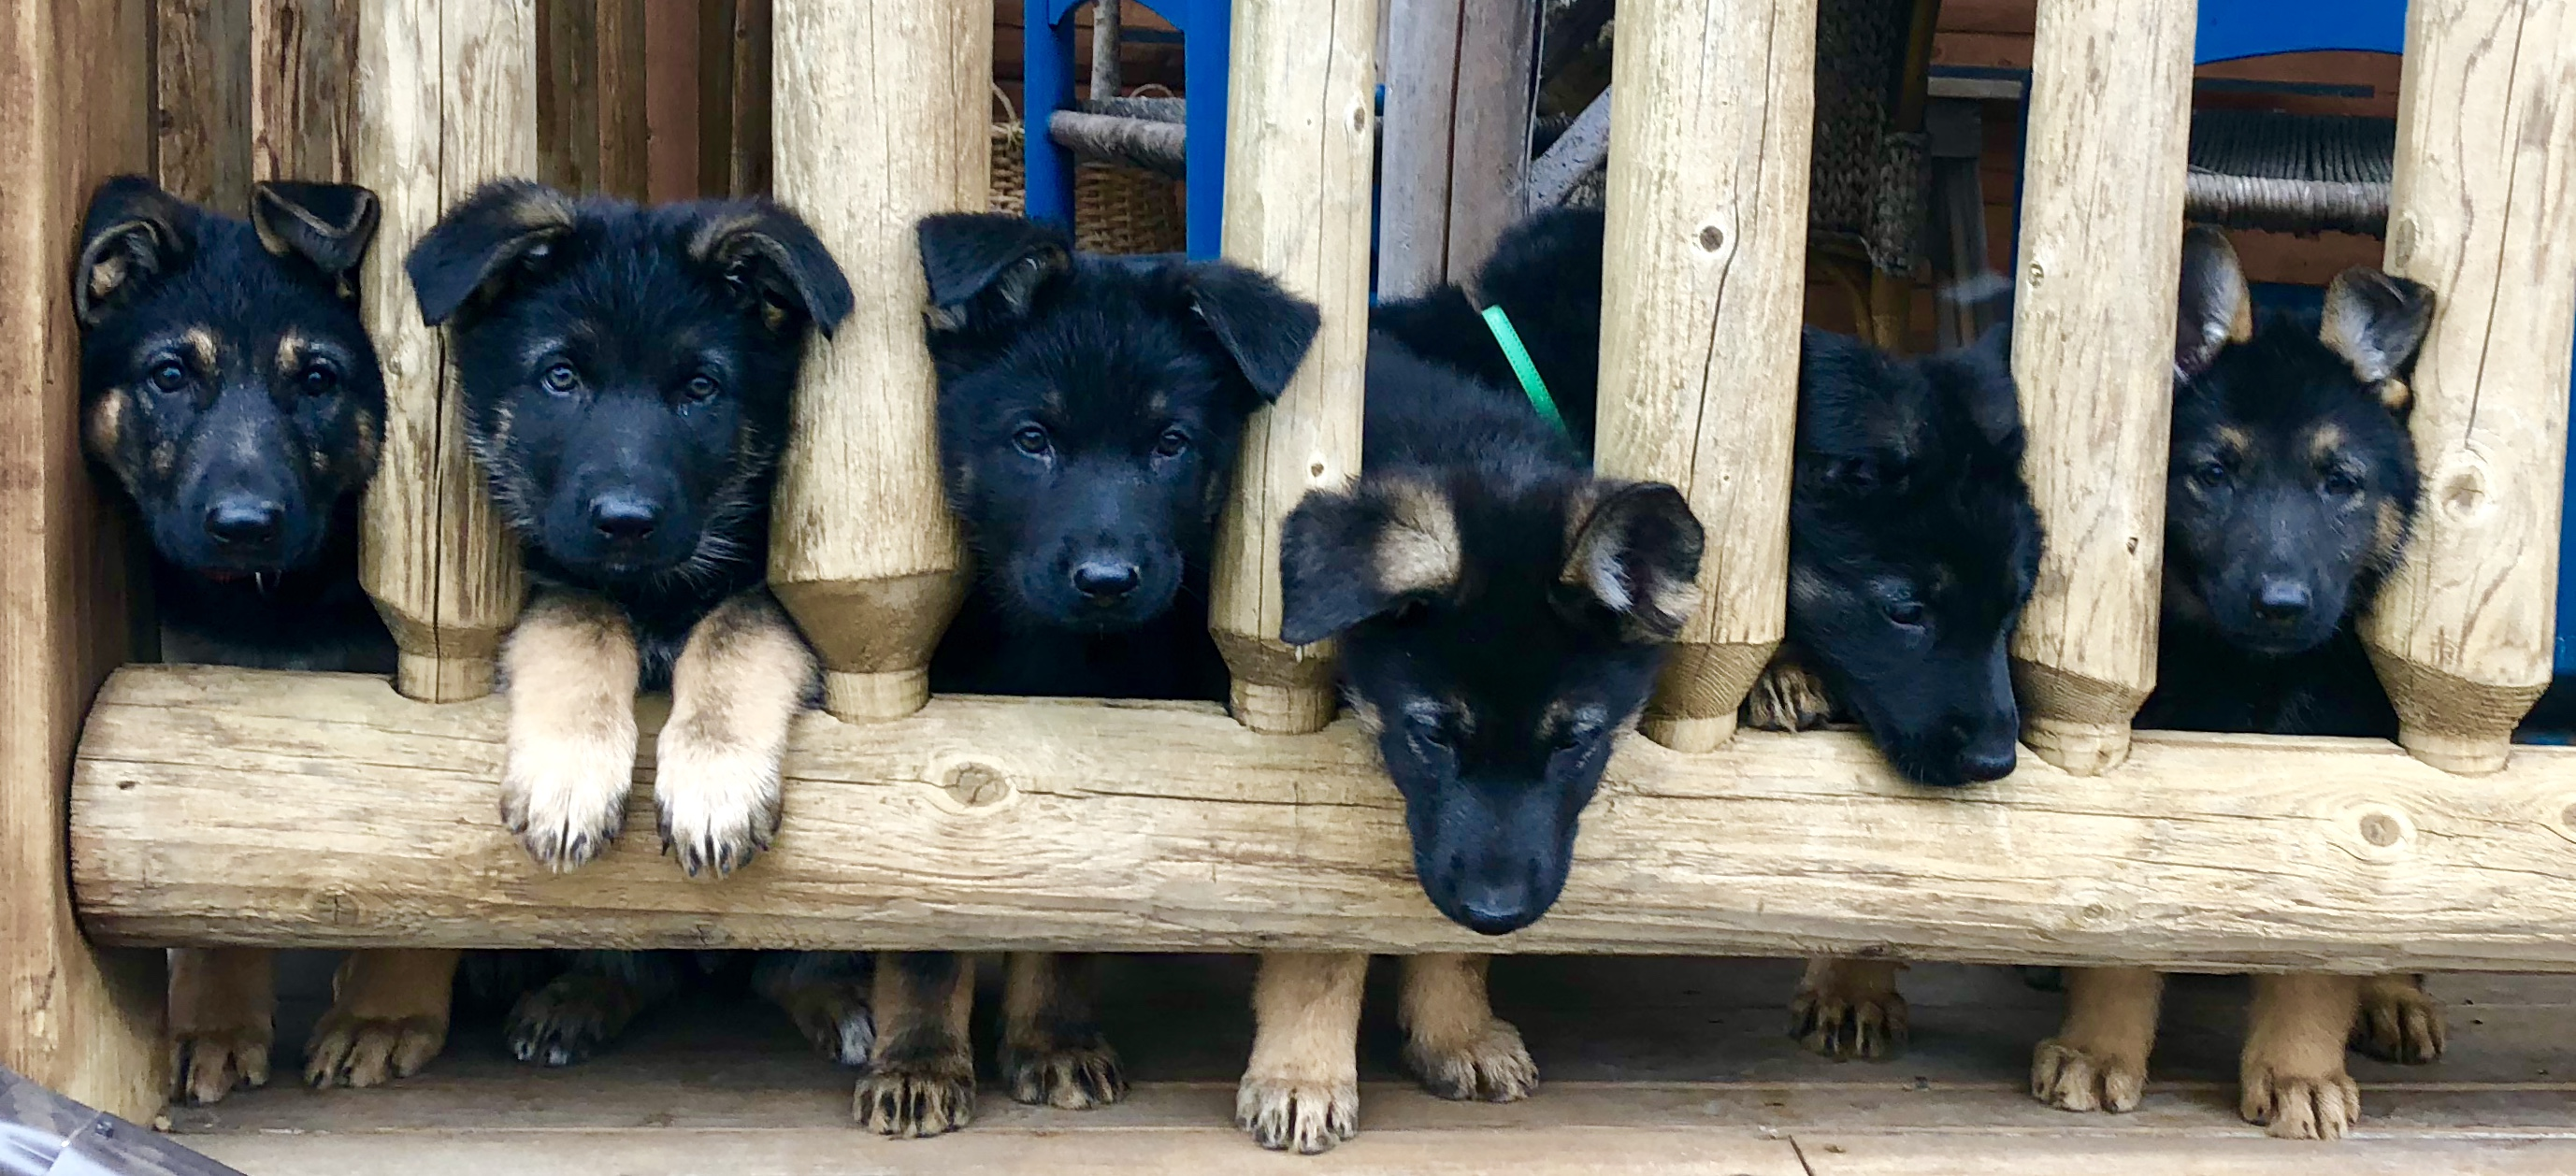 Puppies In Wooden Cage